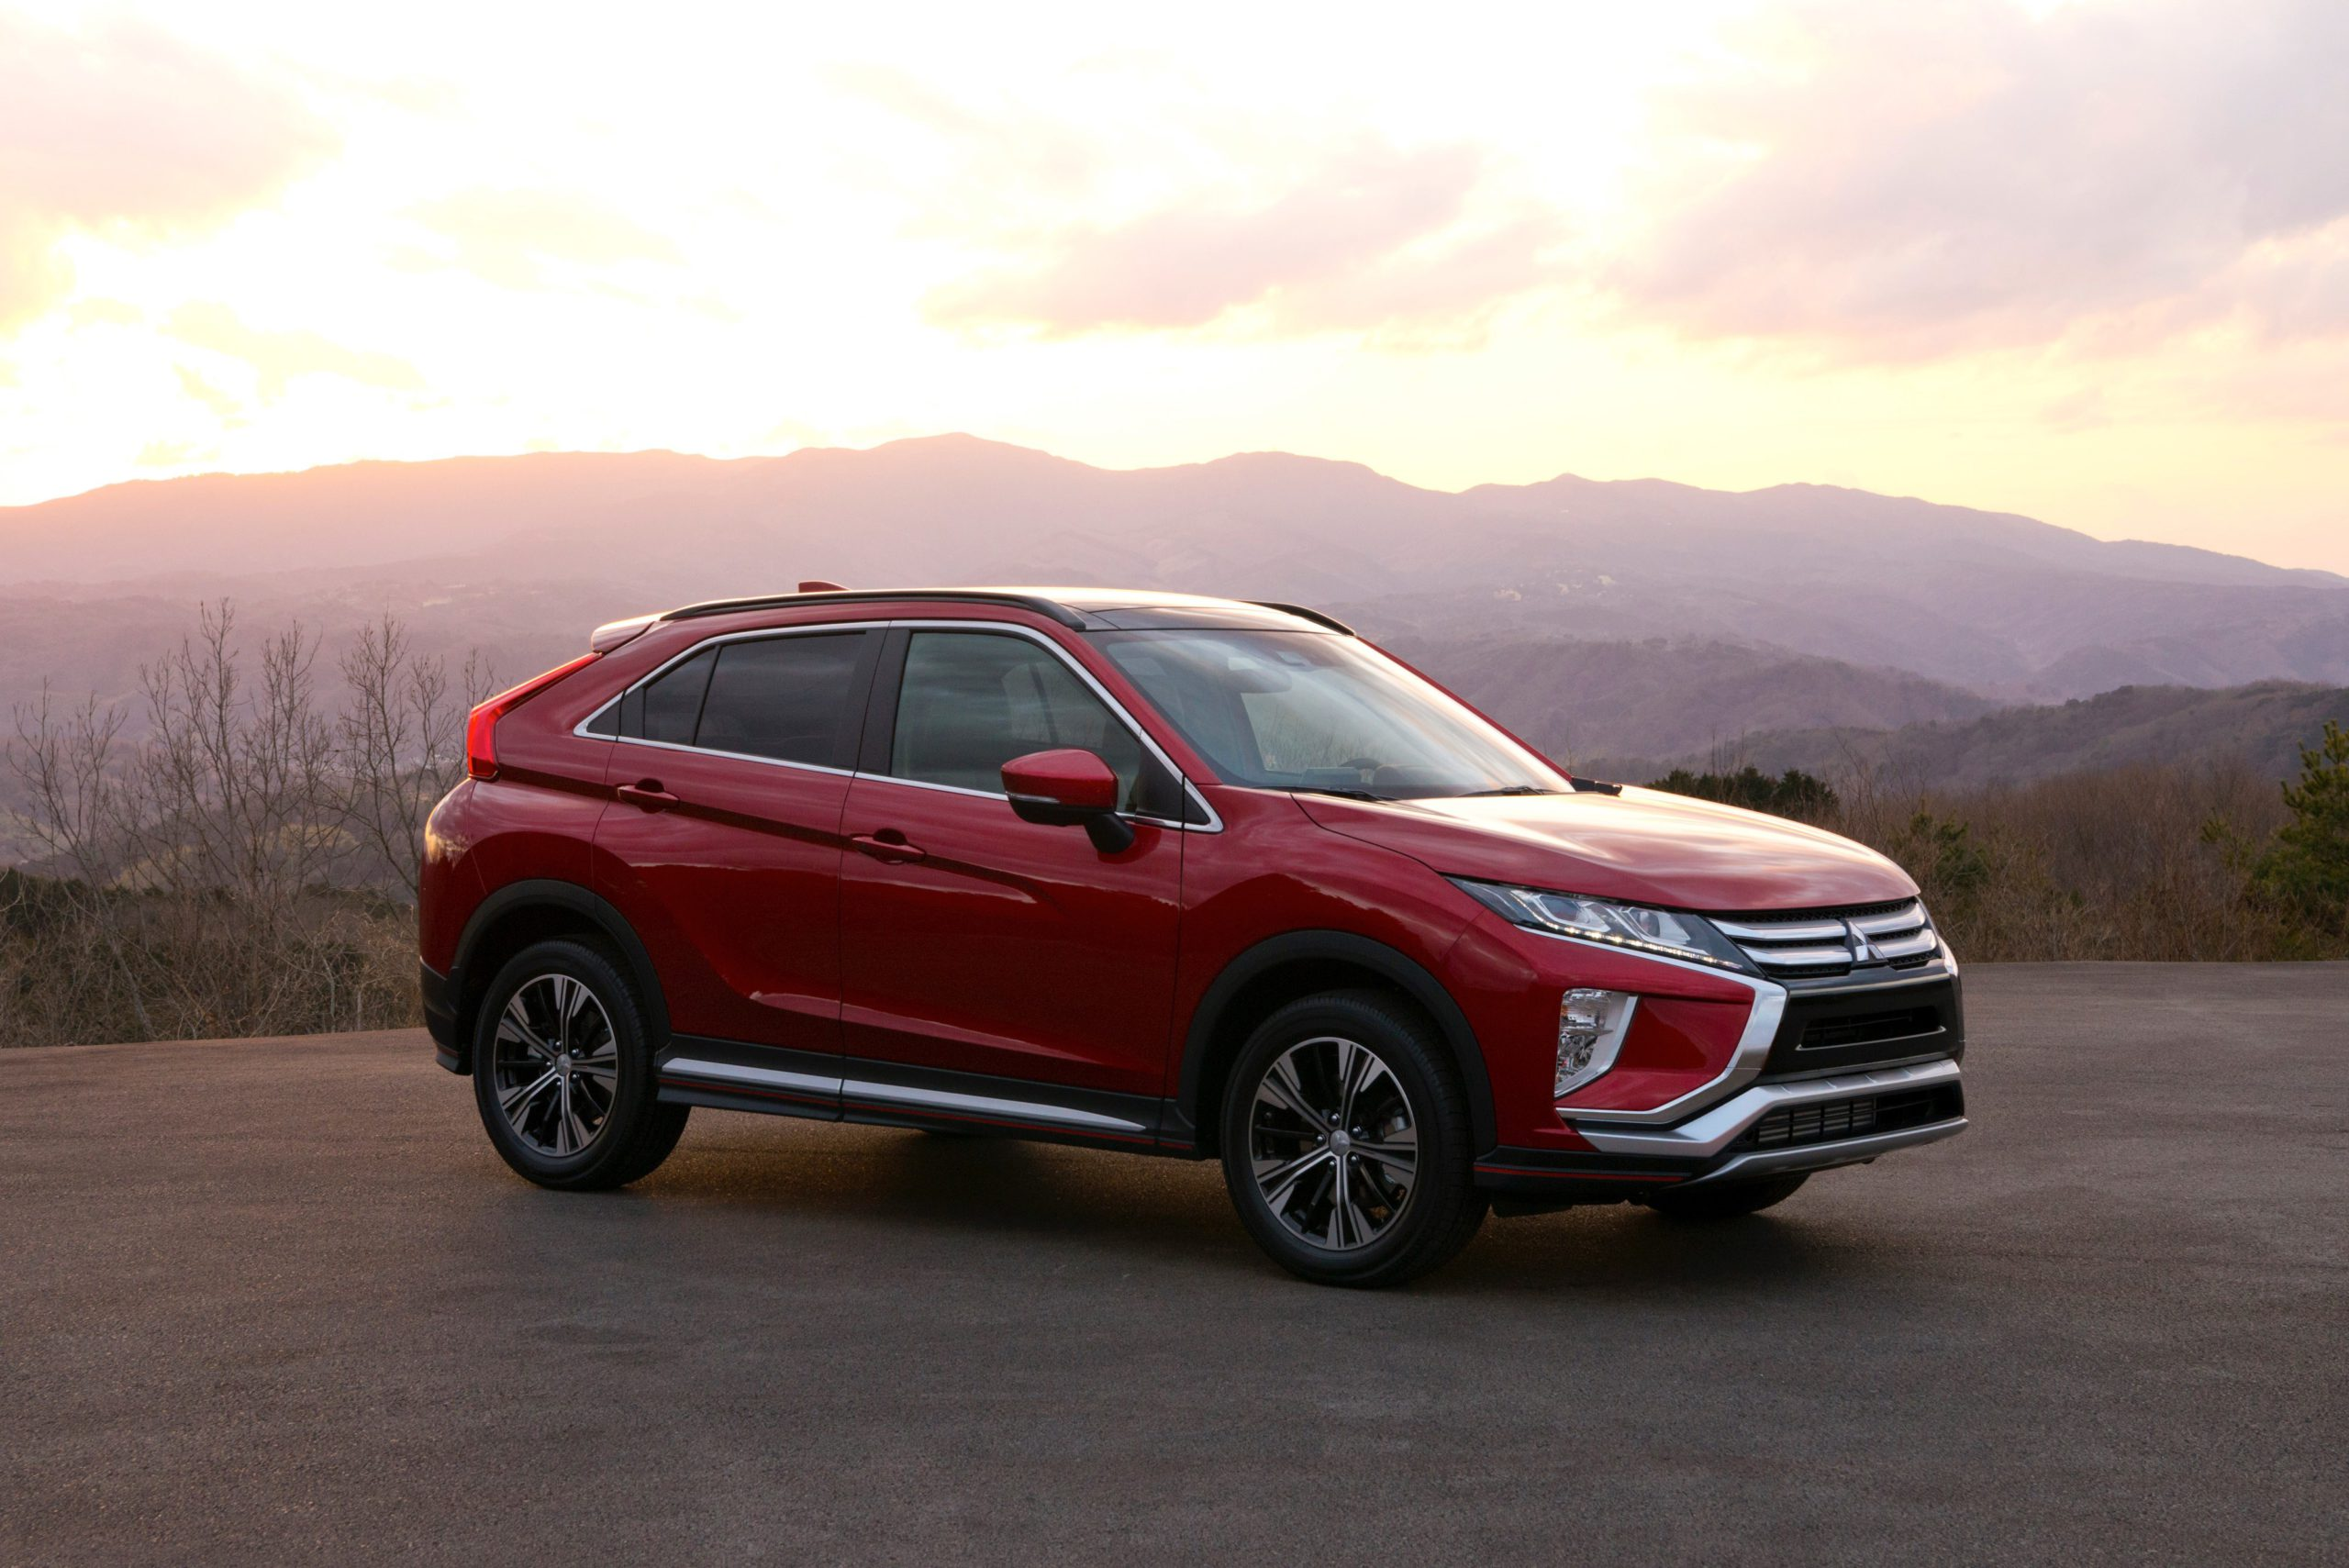 ECLIPSE CROSS EARNS TOP 5-STAR RATING FOR COLLISION SAFETY PERFORMANCE IN FY2018 JNCAP